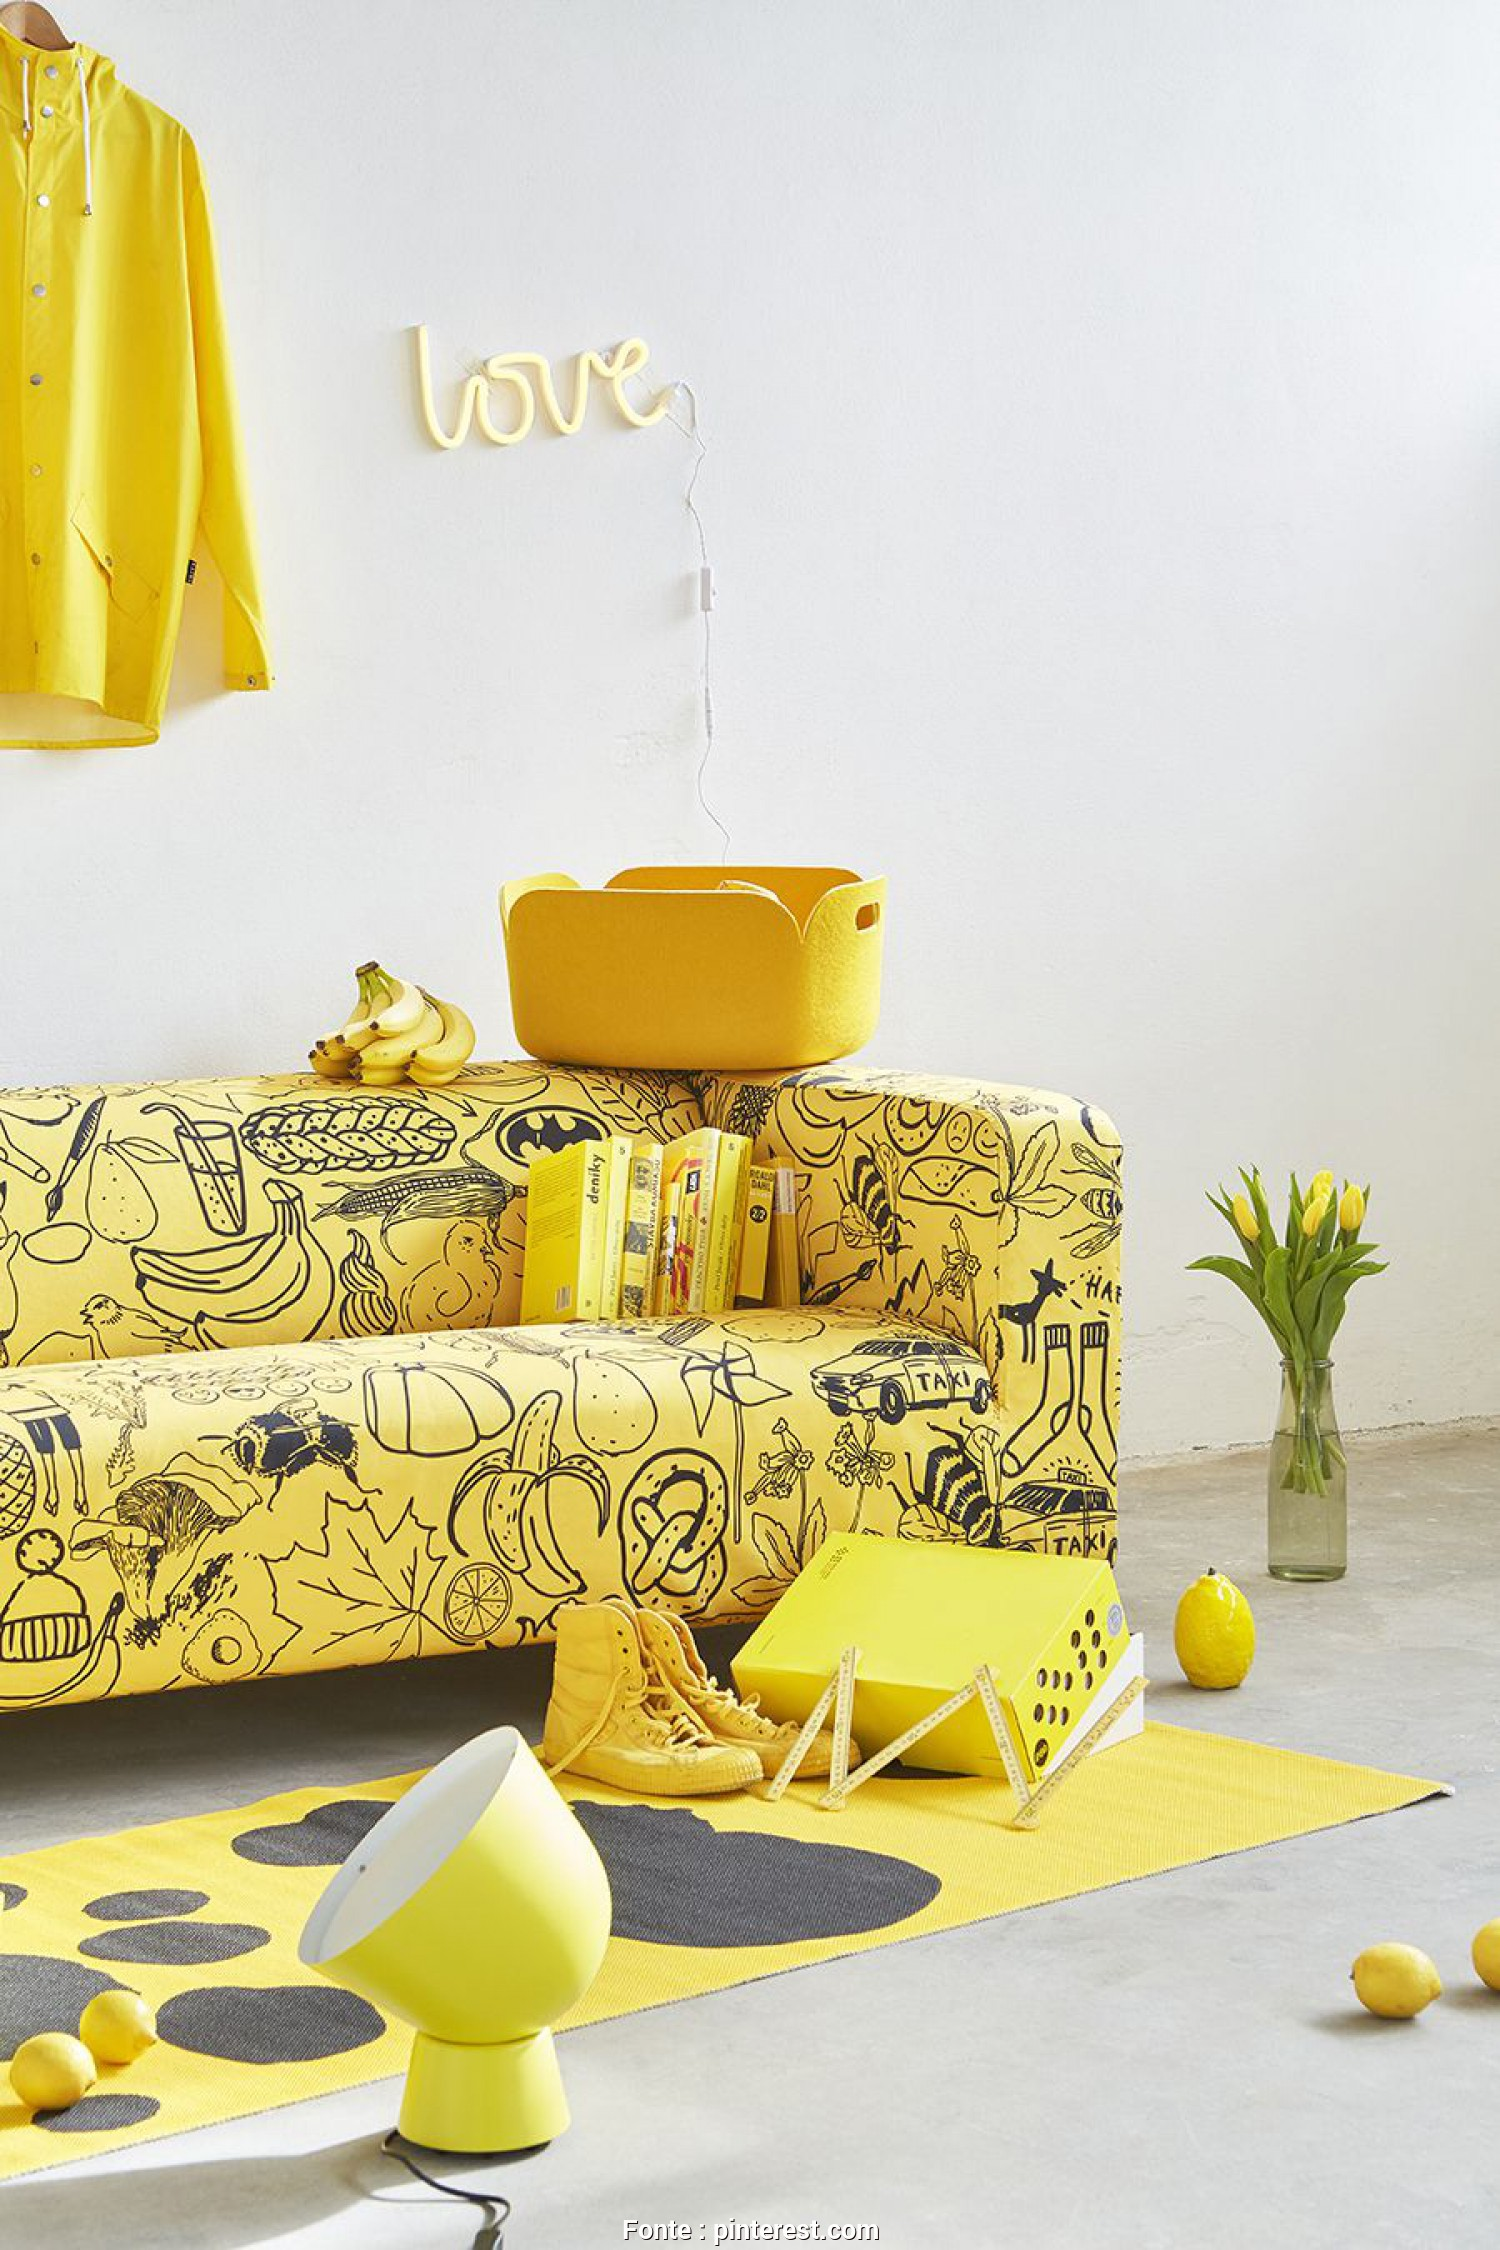 Ikea Klippan Sofa Covers Yellow, Completare ARTEFLY Ikea Klippan Cover YELLOW, Interior Styling /, Rid Of Your Yellow Streak, Give Your Interior A, Air Of Mellow